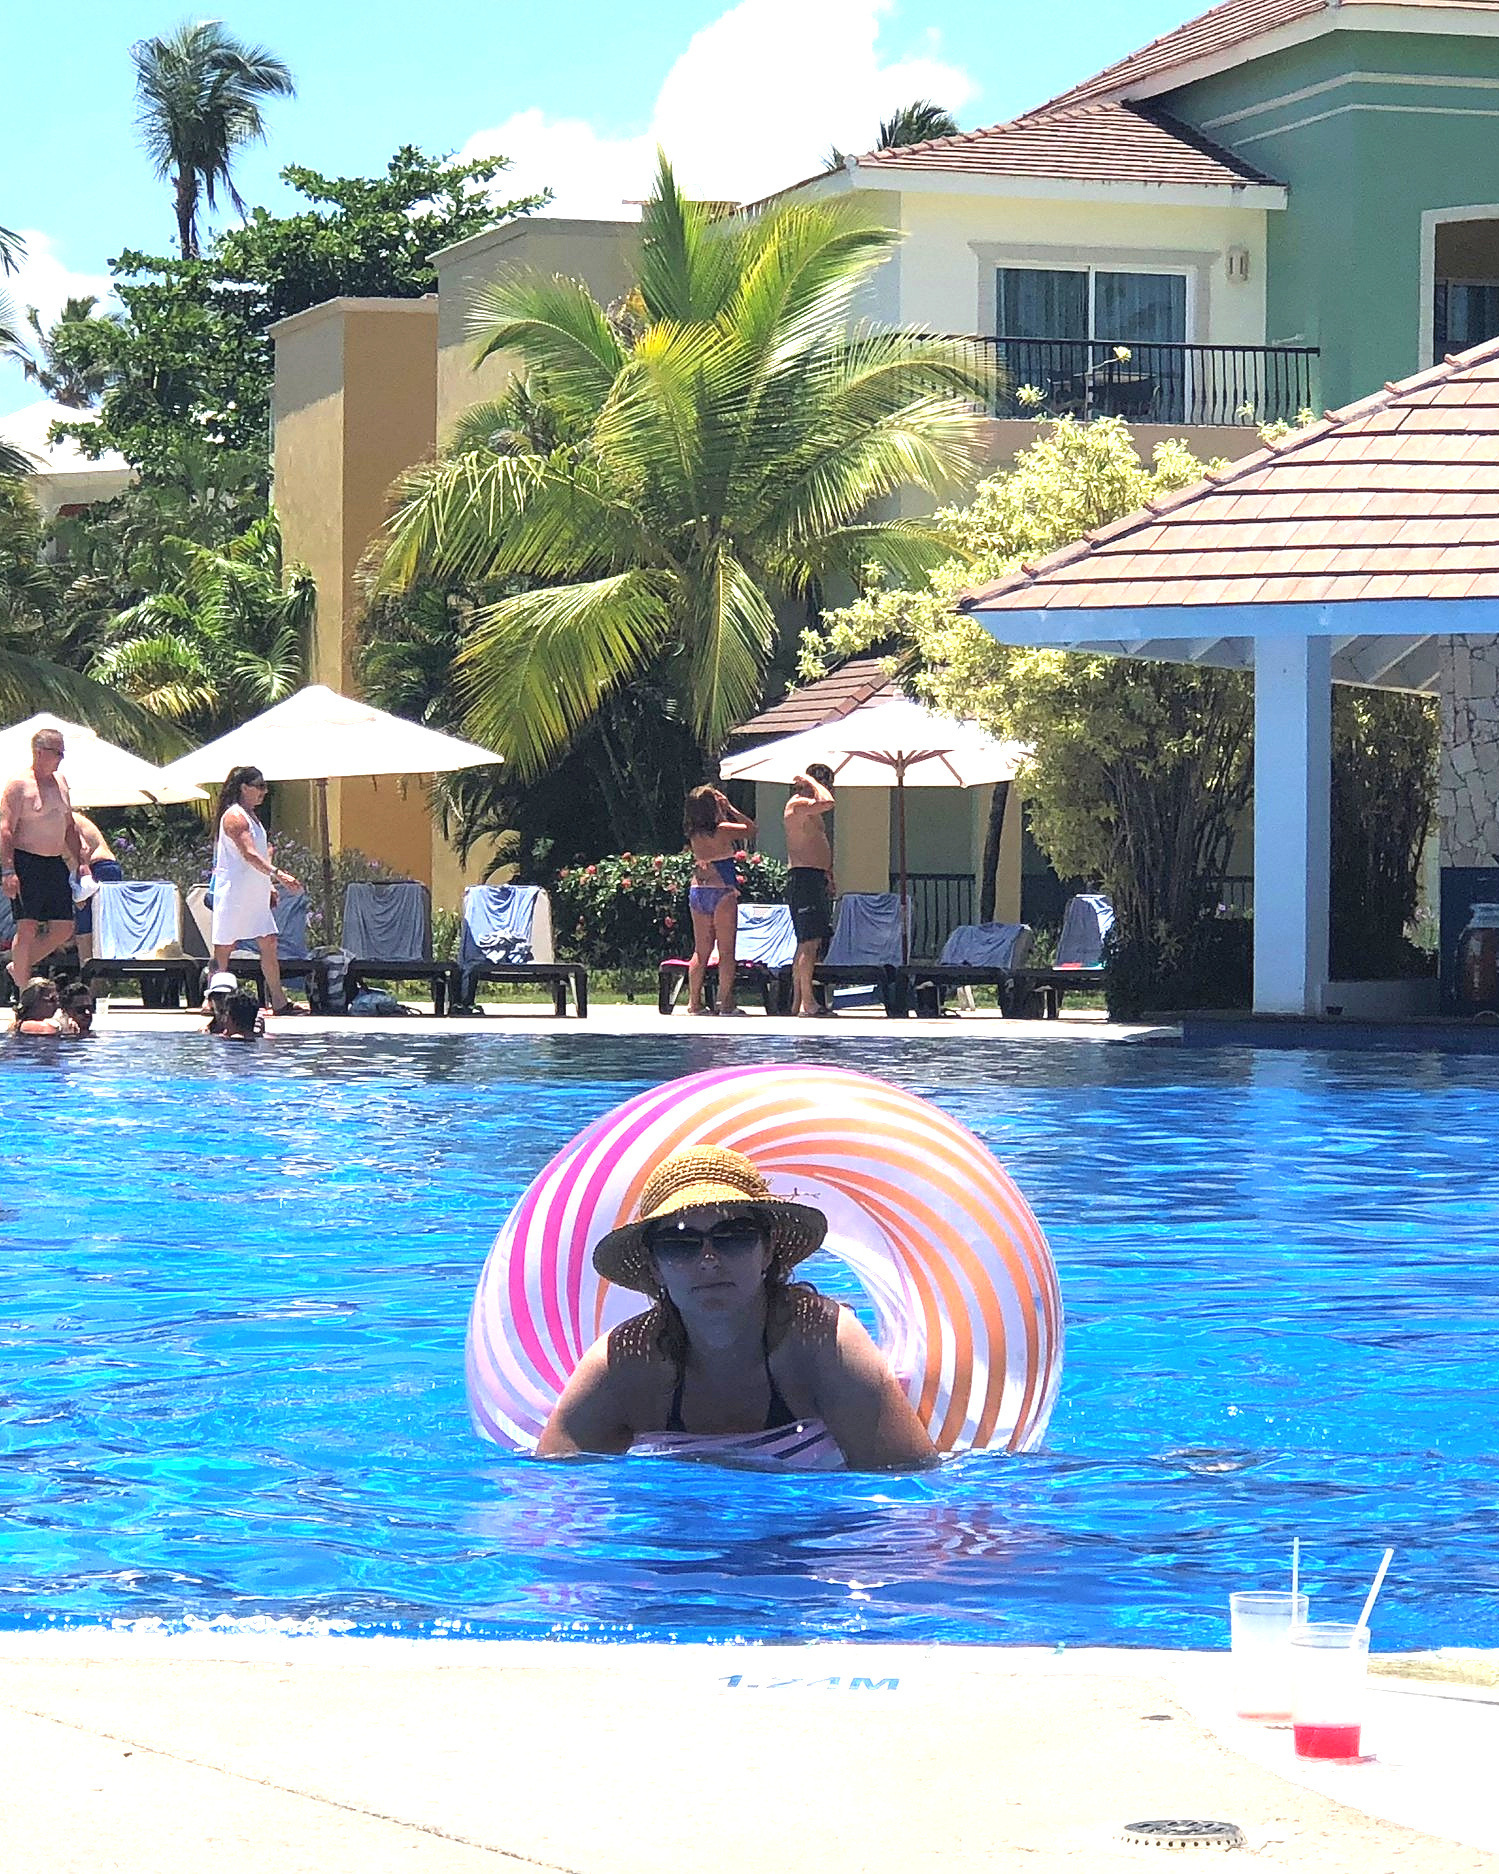 """Sandy Brunner - Ready for the pool""""Going to an All-Inclusive resort or somewhere with a fabulous pool? Pack an inner tube or other inflatable in your suitcase and blow it up when you get there! Then you have something to leisurely float around the pool in while sipping the cocktail of your choice. It definitely makes the trip that much more relaxing."""""""